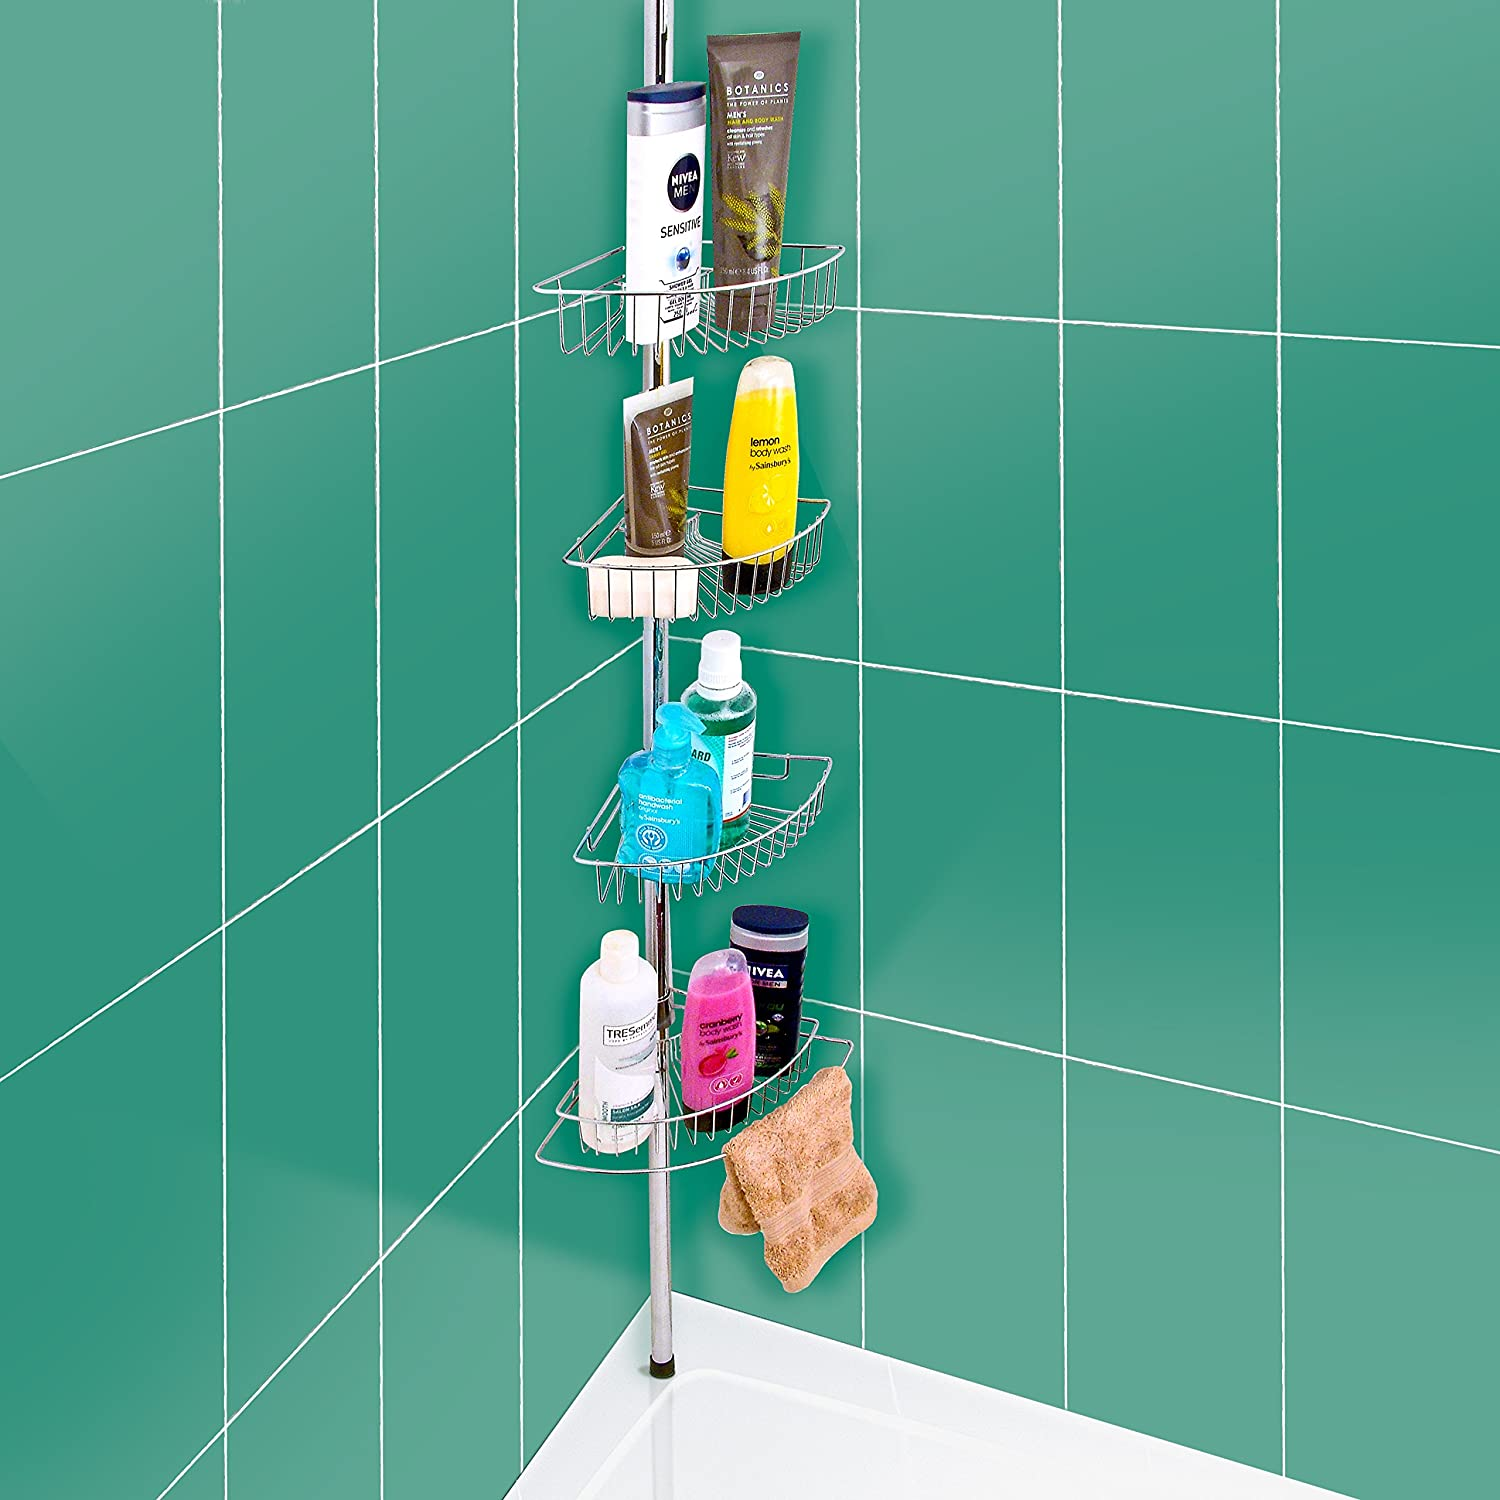 Shower Caddy/ 4 Tier Bathroom Shelf Units/ Tidy Storage: Amazon.co ...